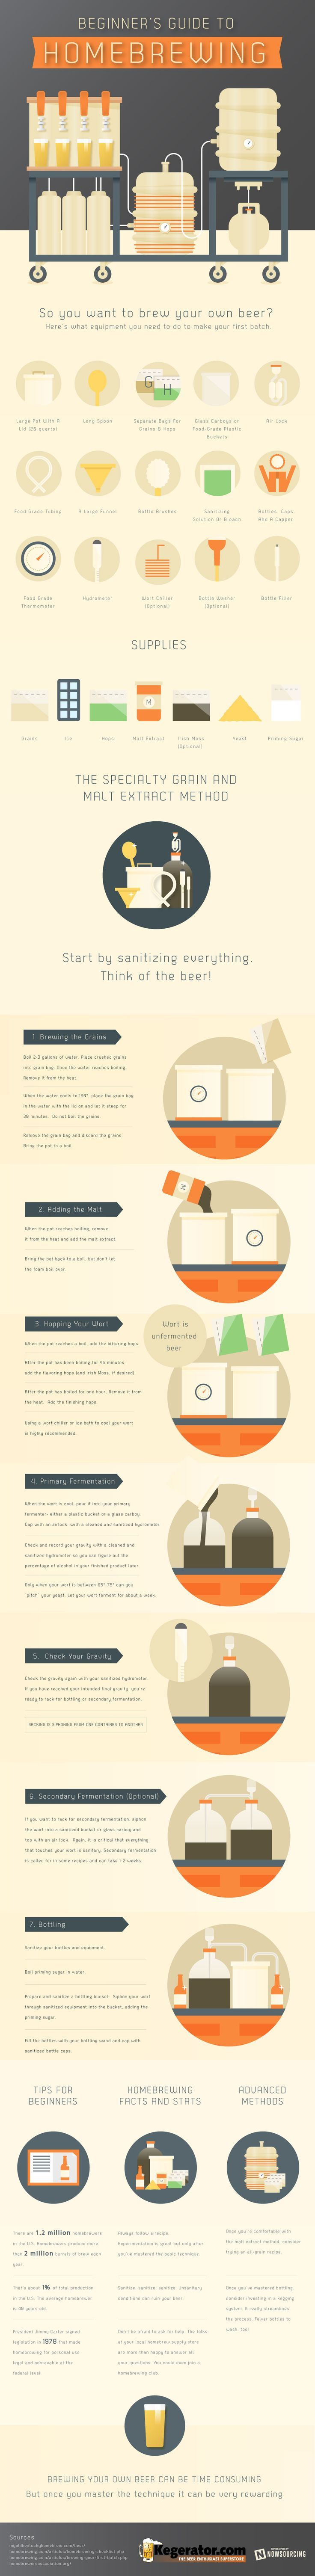 A Beginner's Guide to Homebrewing :: INFOGRAPHIC